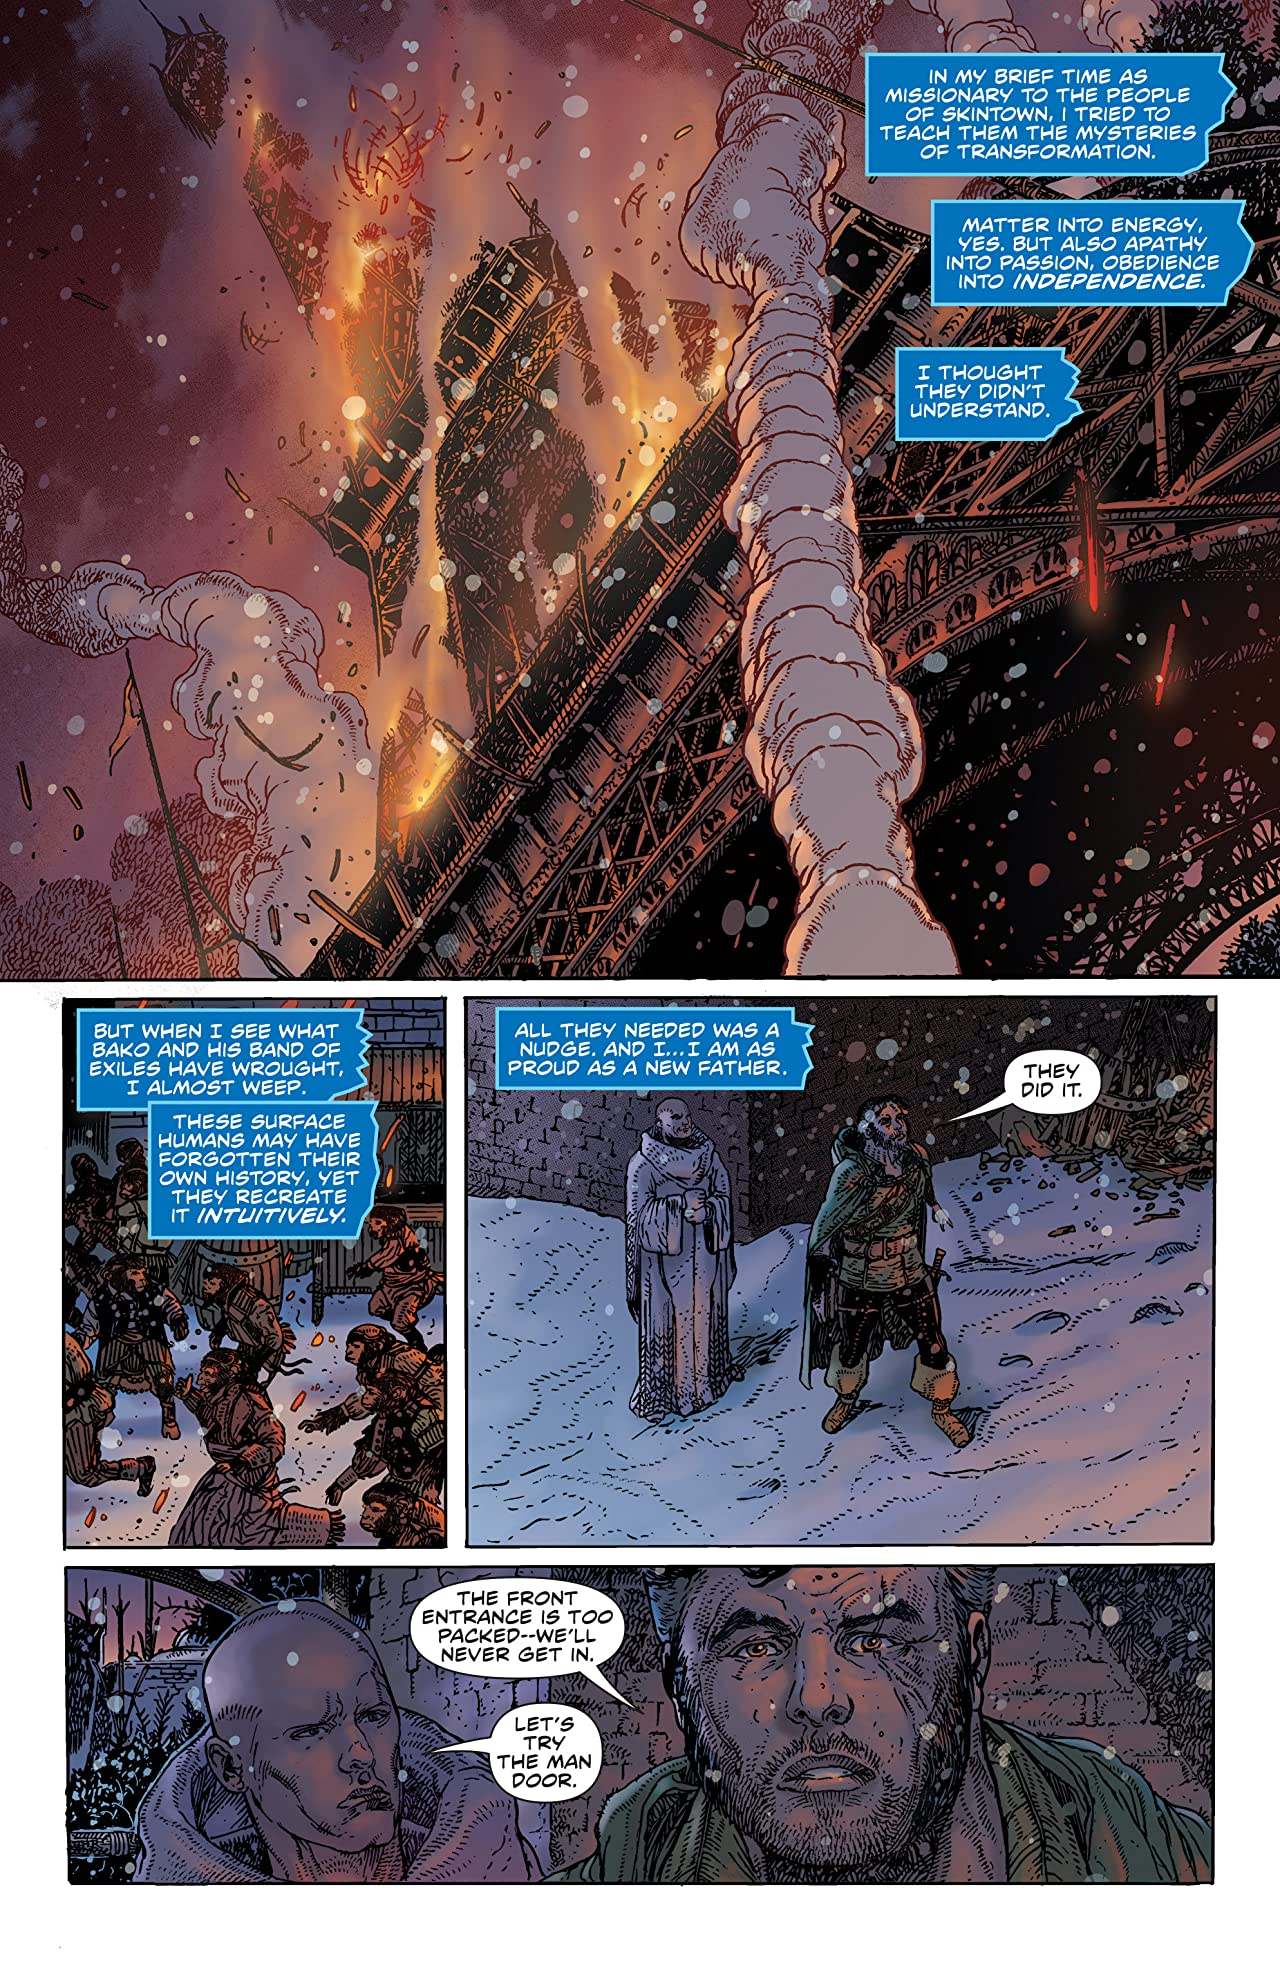 Planet of the Apes #12